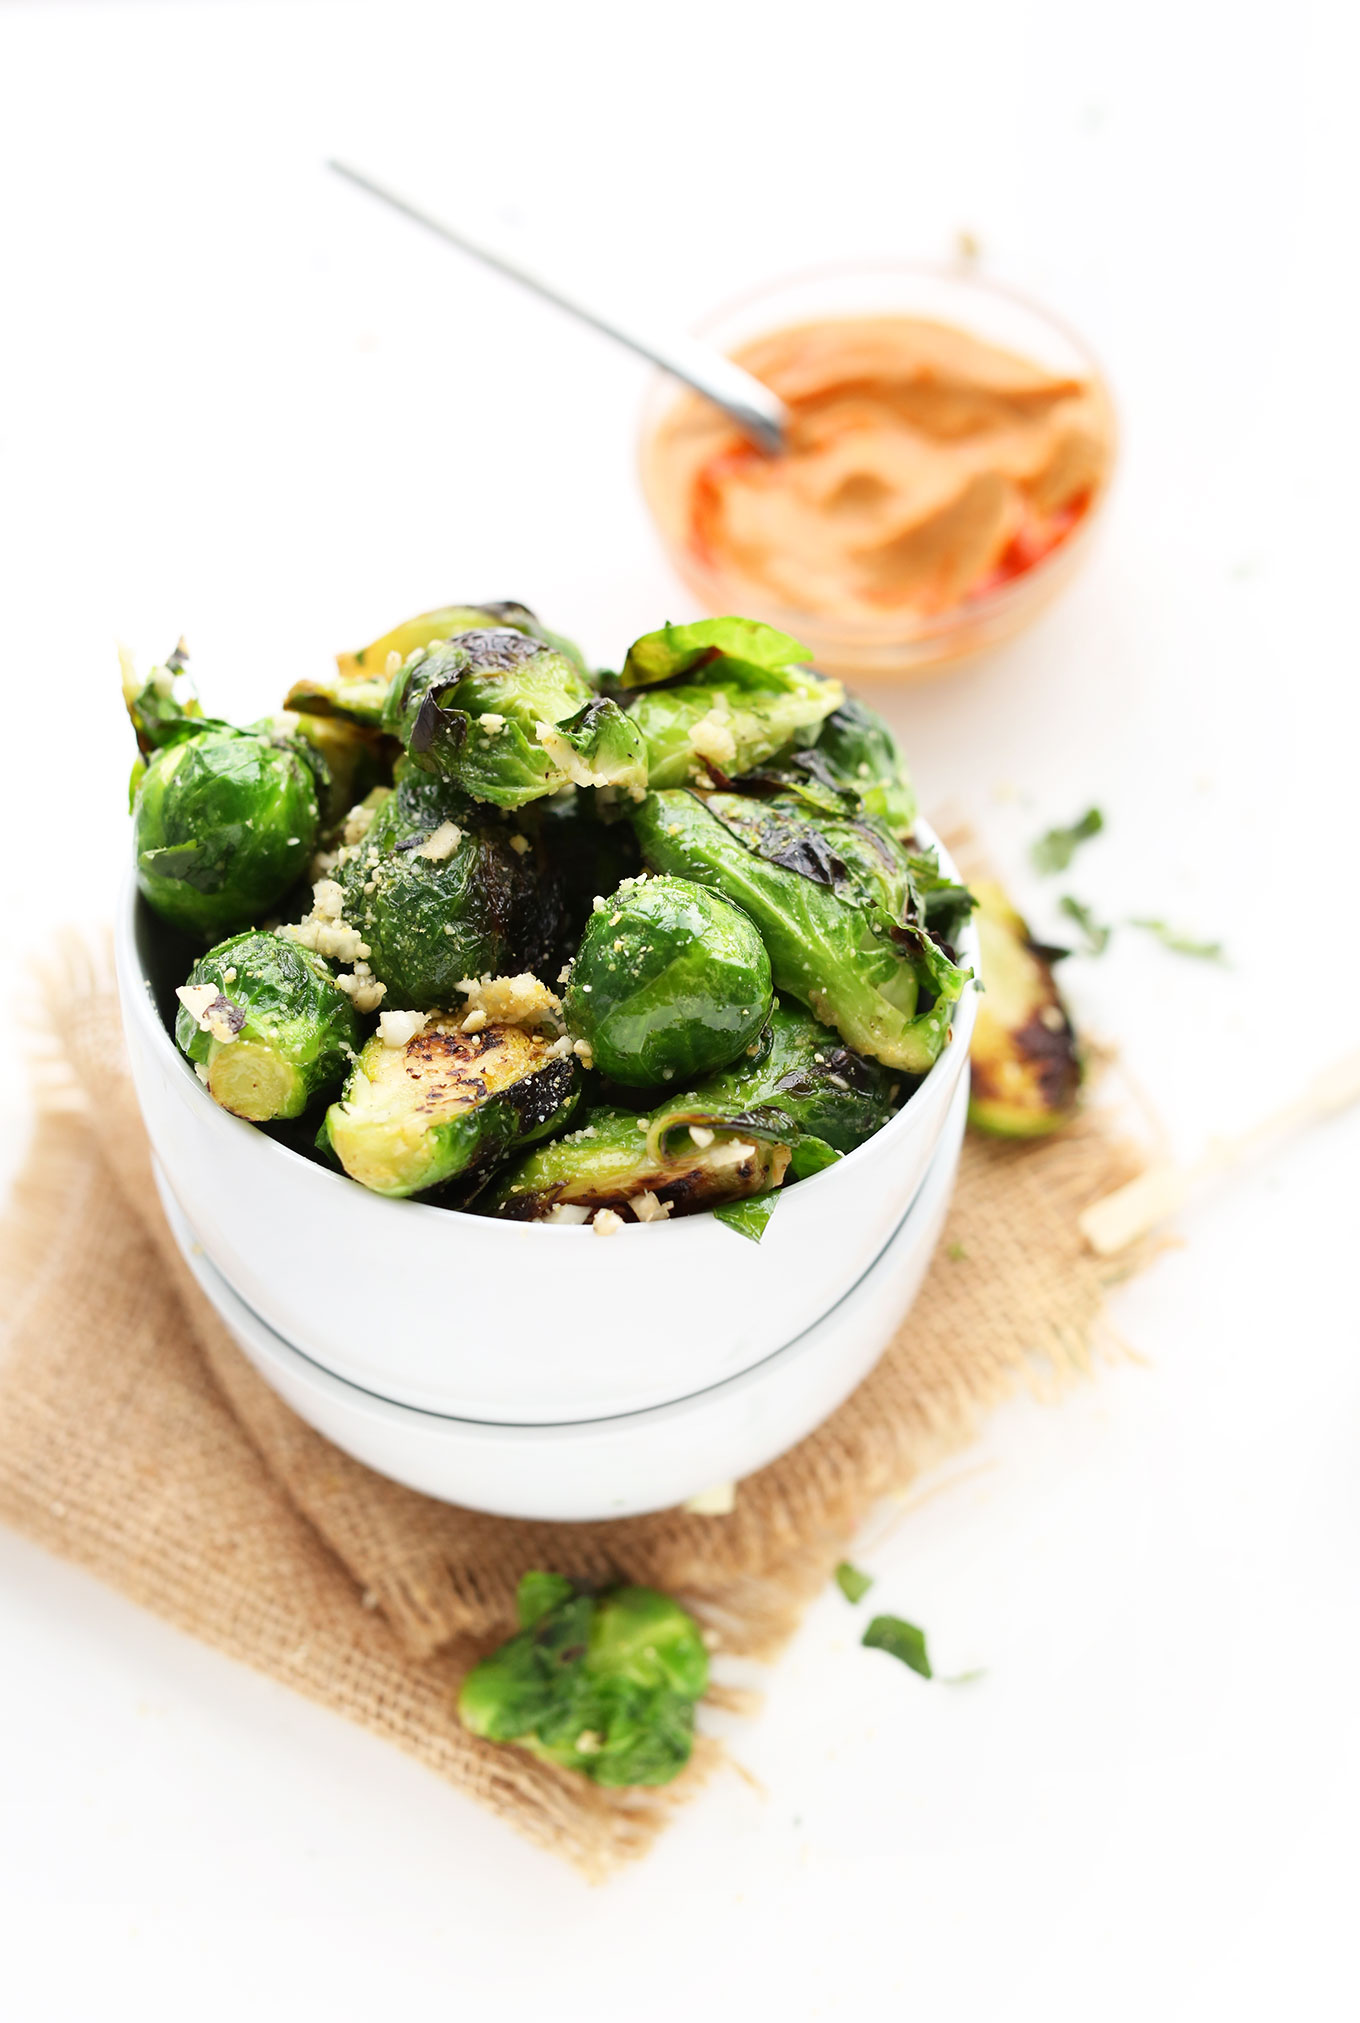 Bowl of Crispy Roasted Brussels Sprouts to be dipped in our spicy Sriracha Aioli recipe